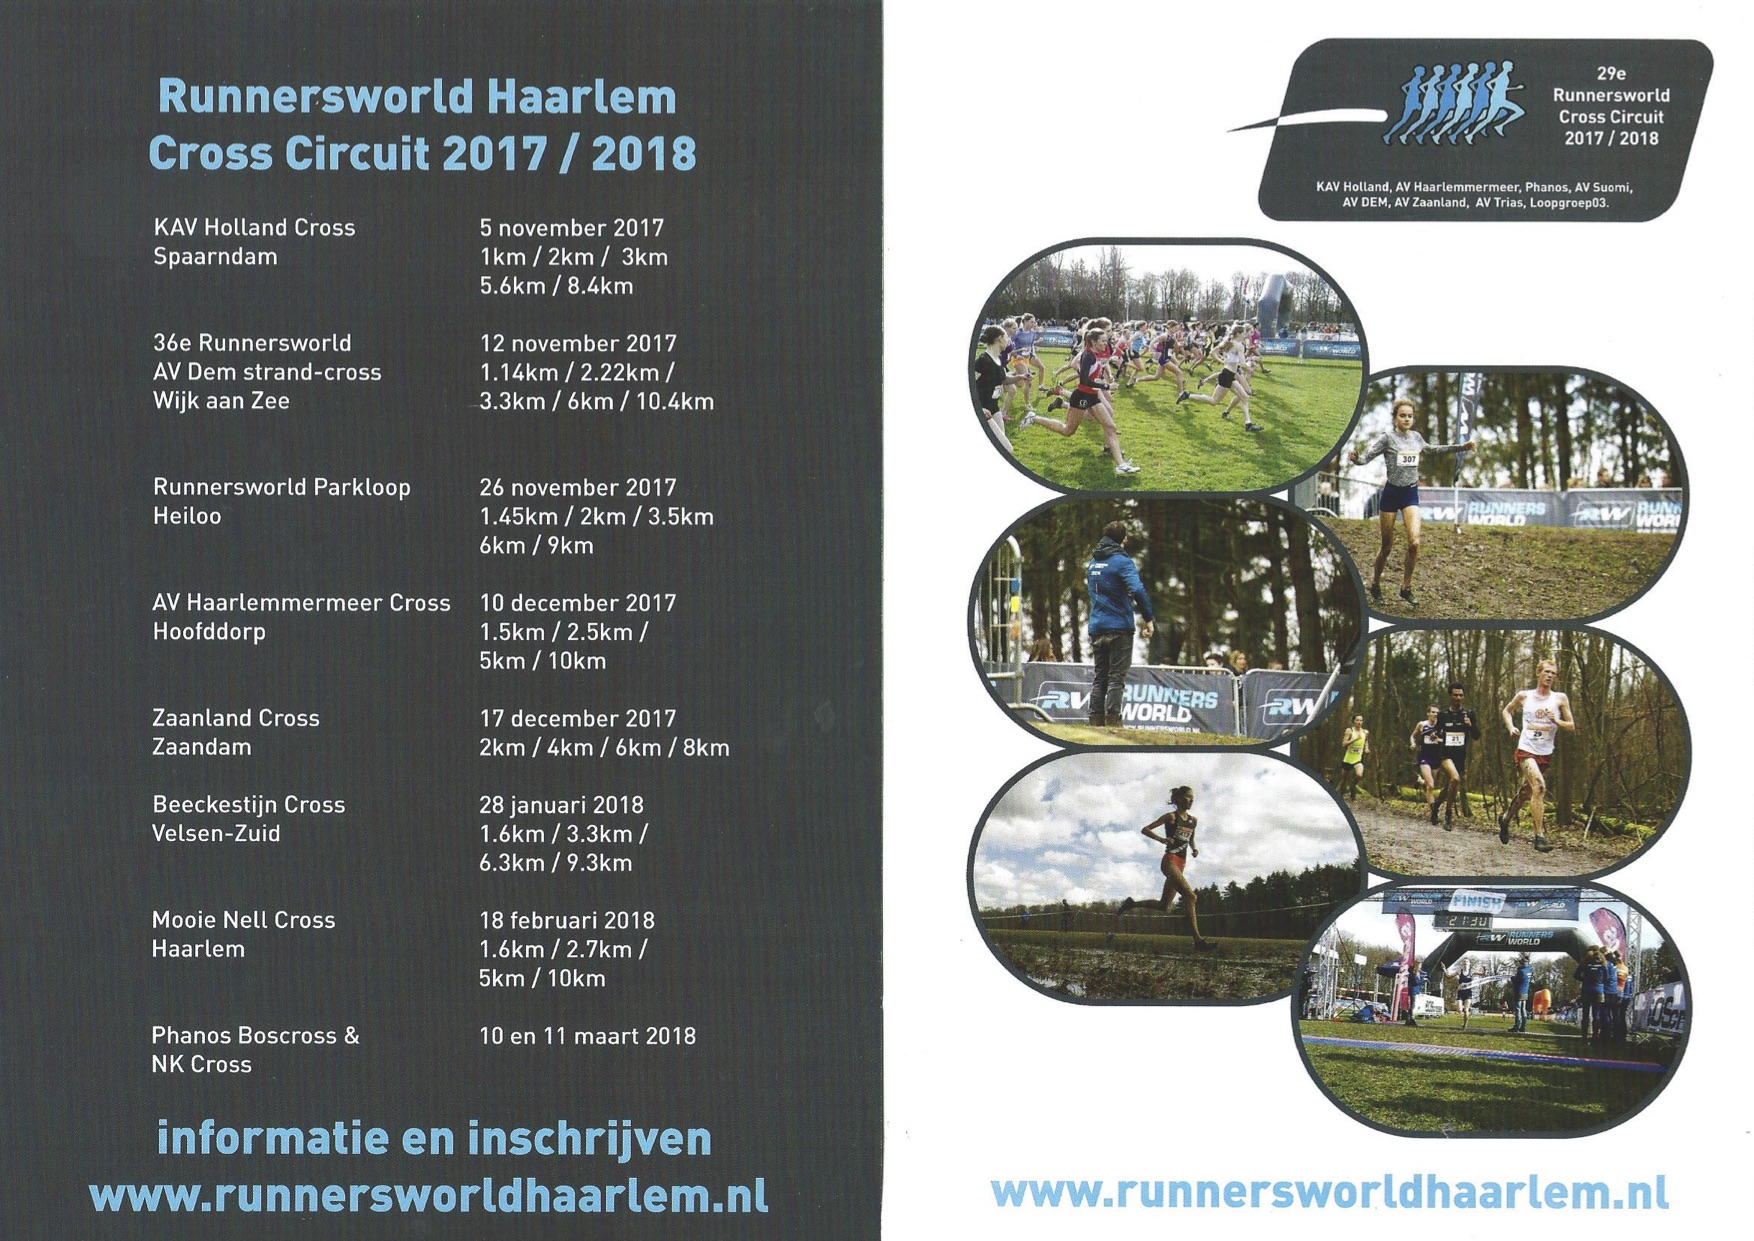 Flyer RW Cross ciruit 2017 2018 kopie